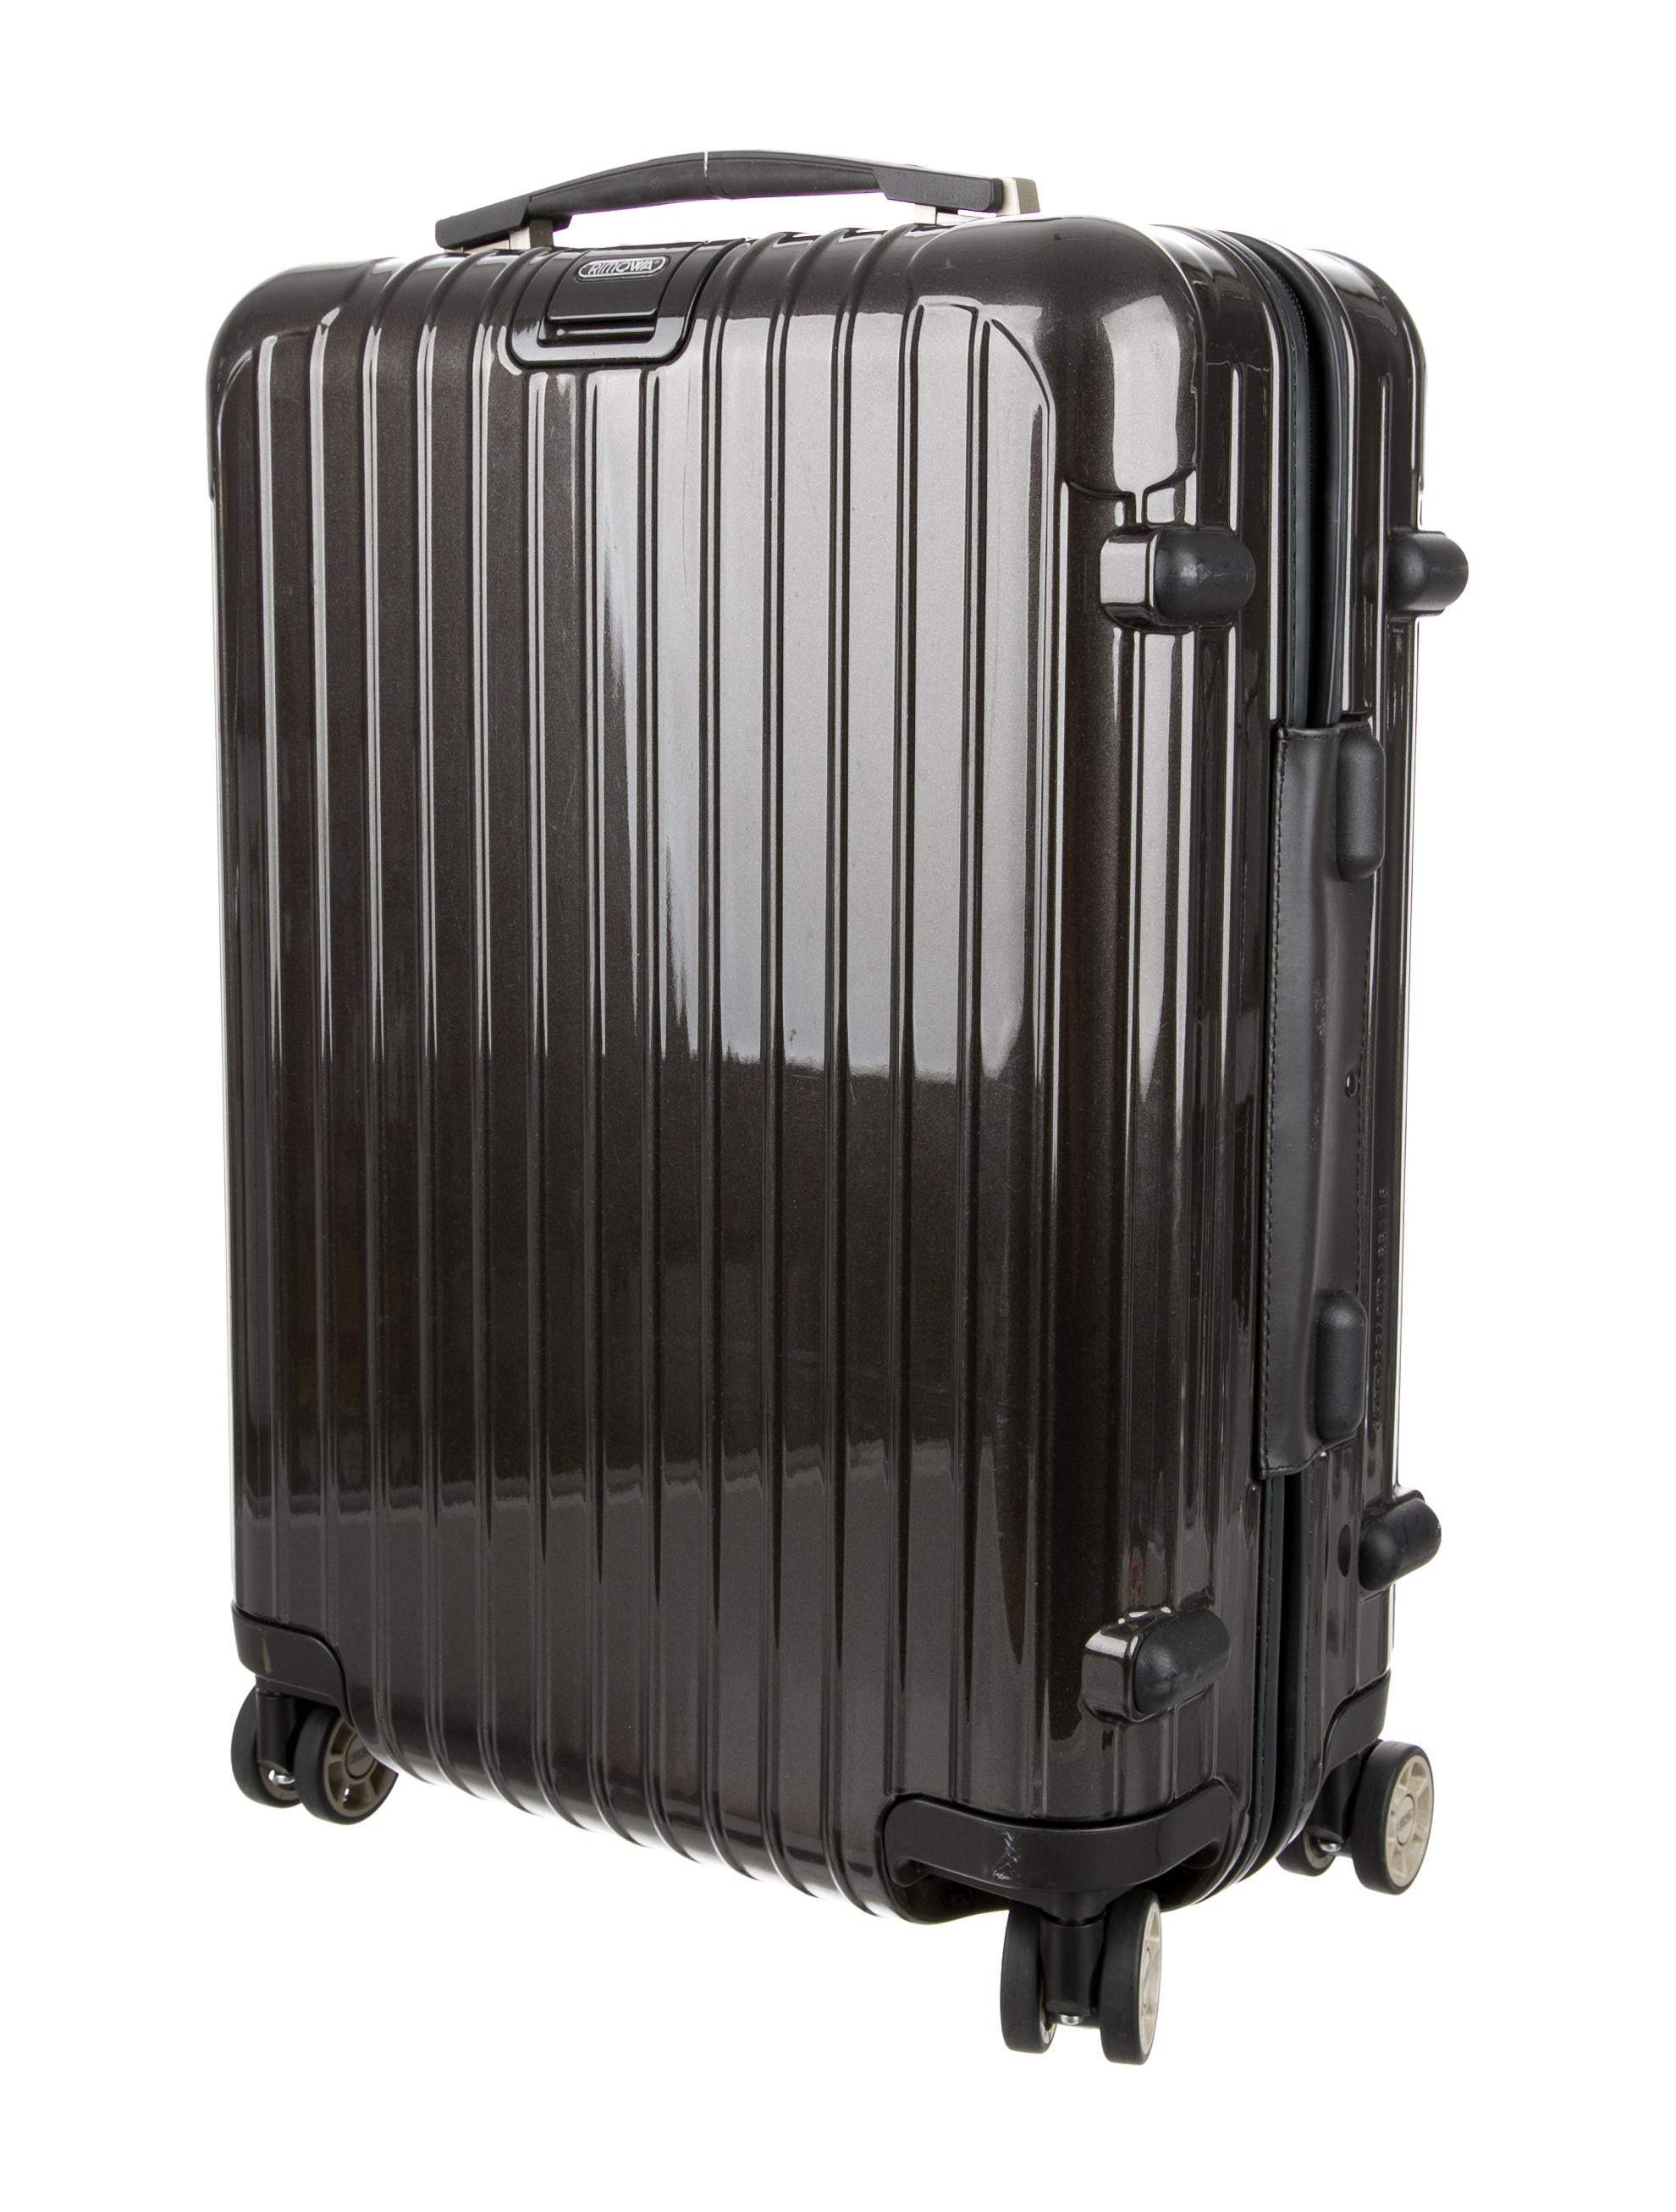 rimowa salsa deluxe cabin multiwheel suitcase luggage rwa20068 the realreal. Black Bedroom Furniture Sets. Home Design Ideas